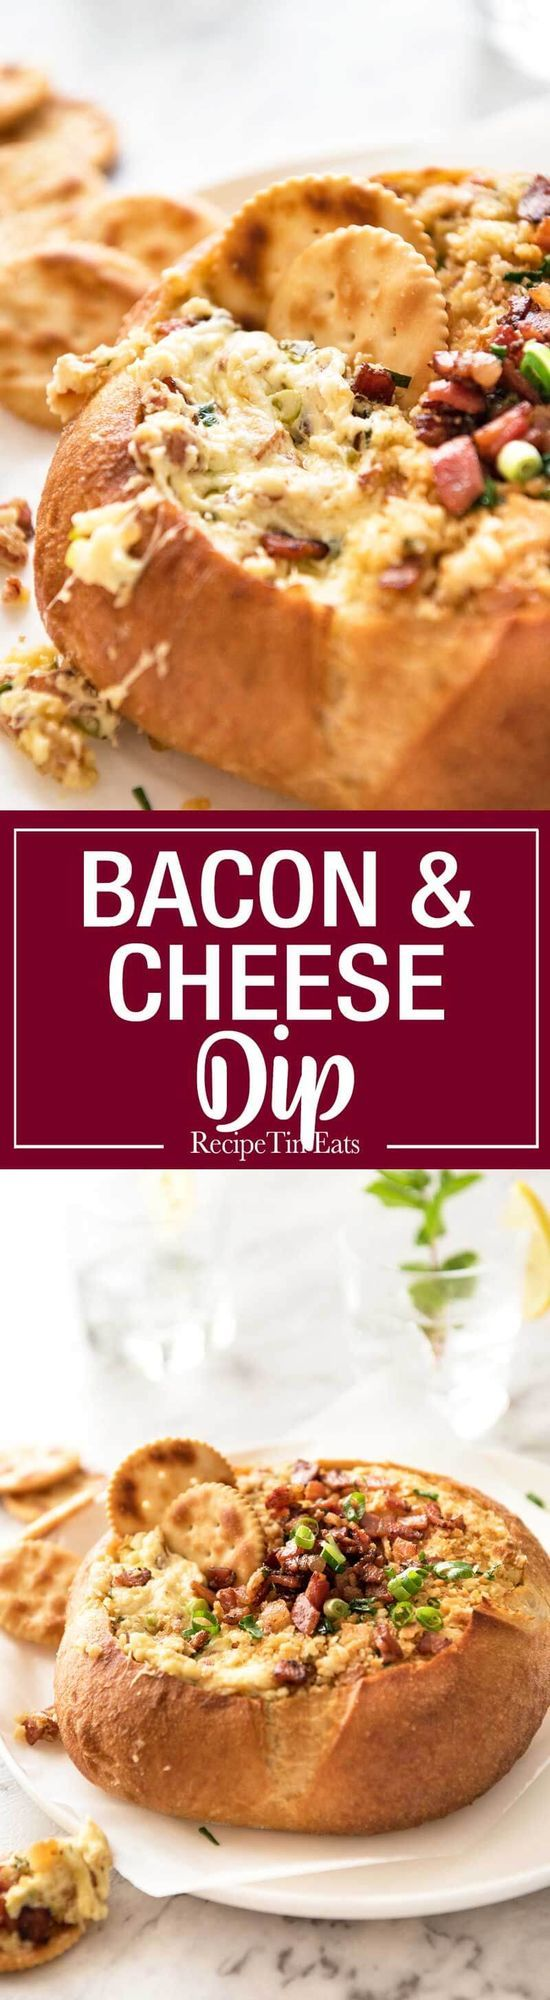 It's hot, it's creamy, it's cheesy and loaded with bacon. This Cheese and Bacon Dip is every snack monsters' dream come true, especially because it's so fast to make. It is completely different from t